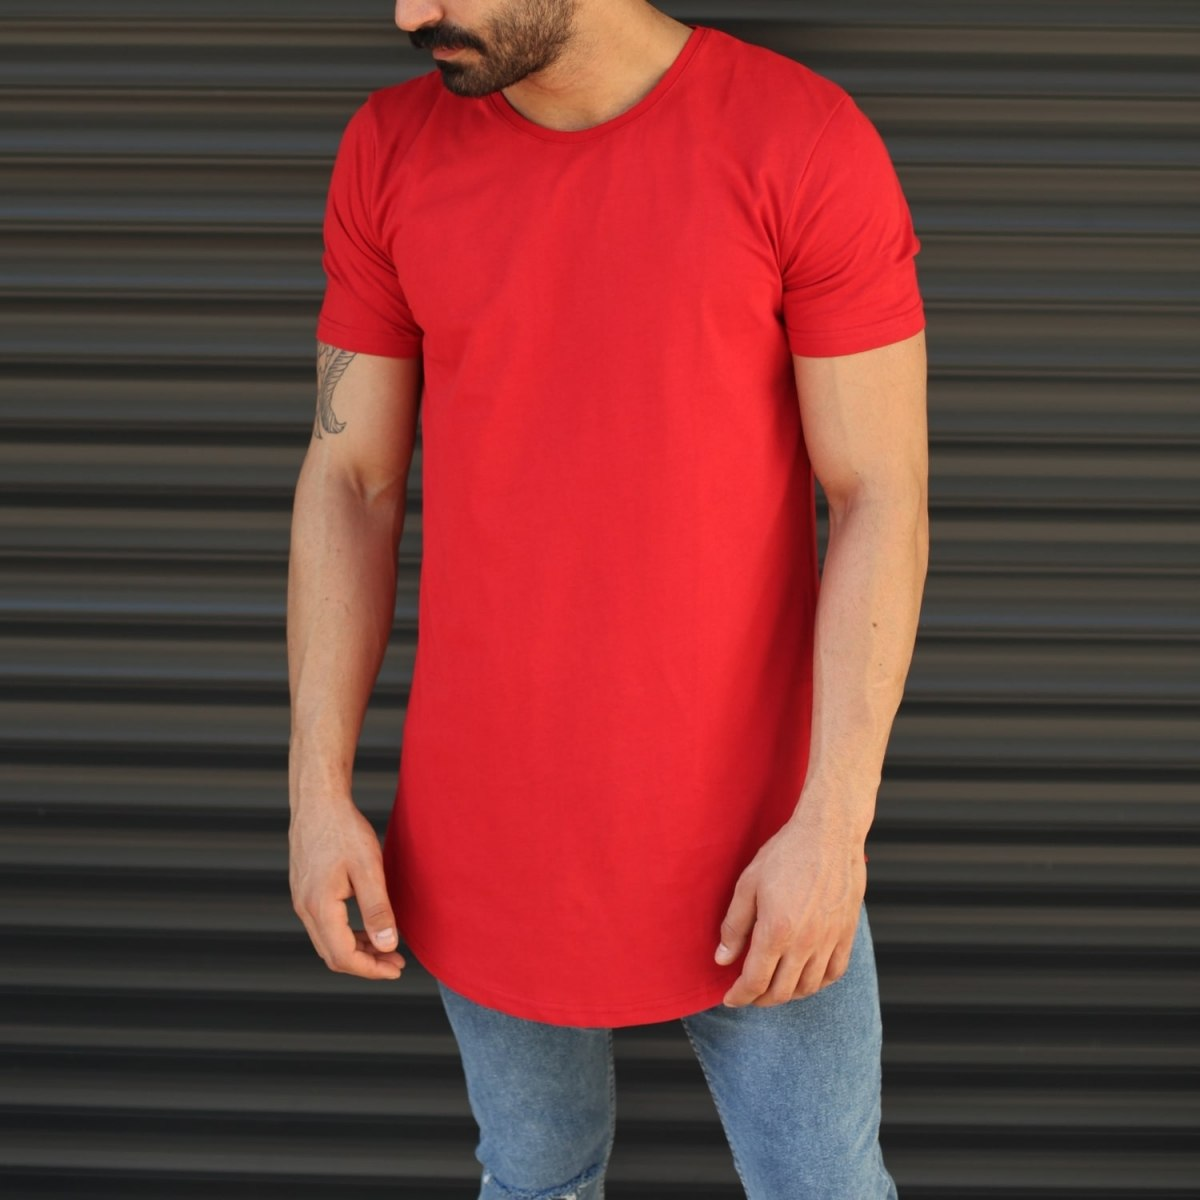 Men's Longline Round Neck T-Shirt With Zipper In Red Mv Premium Brand - 1